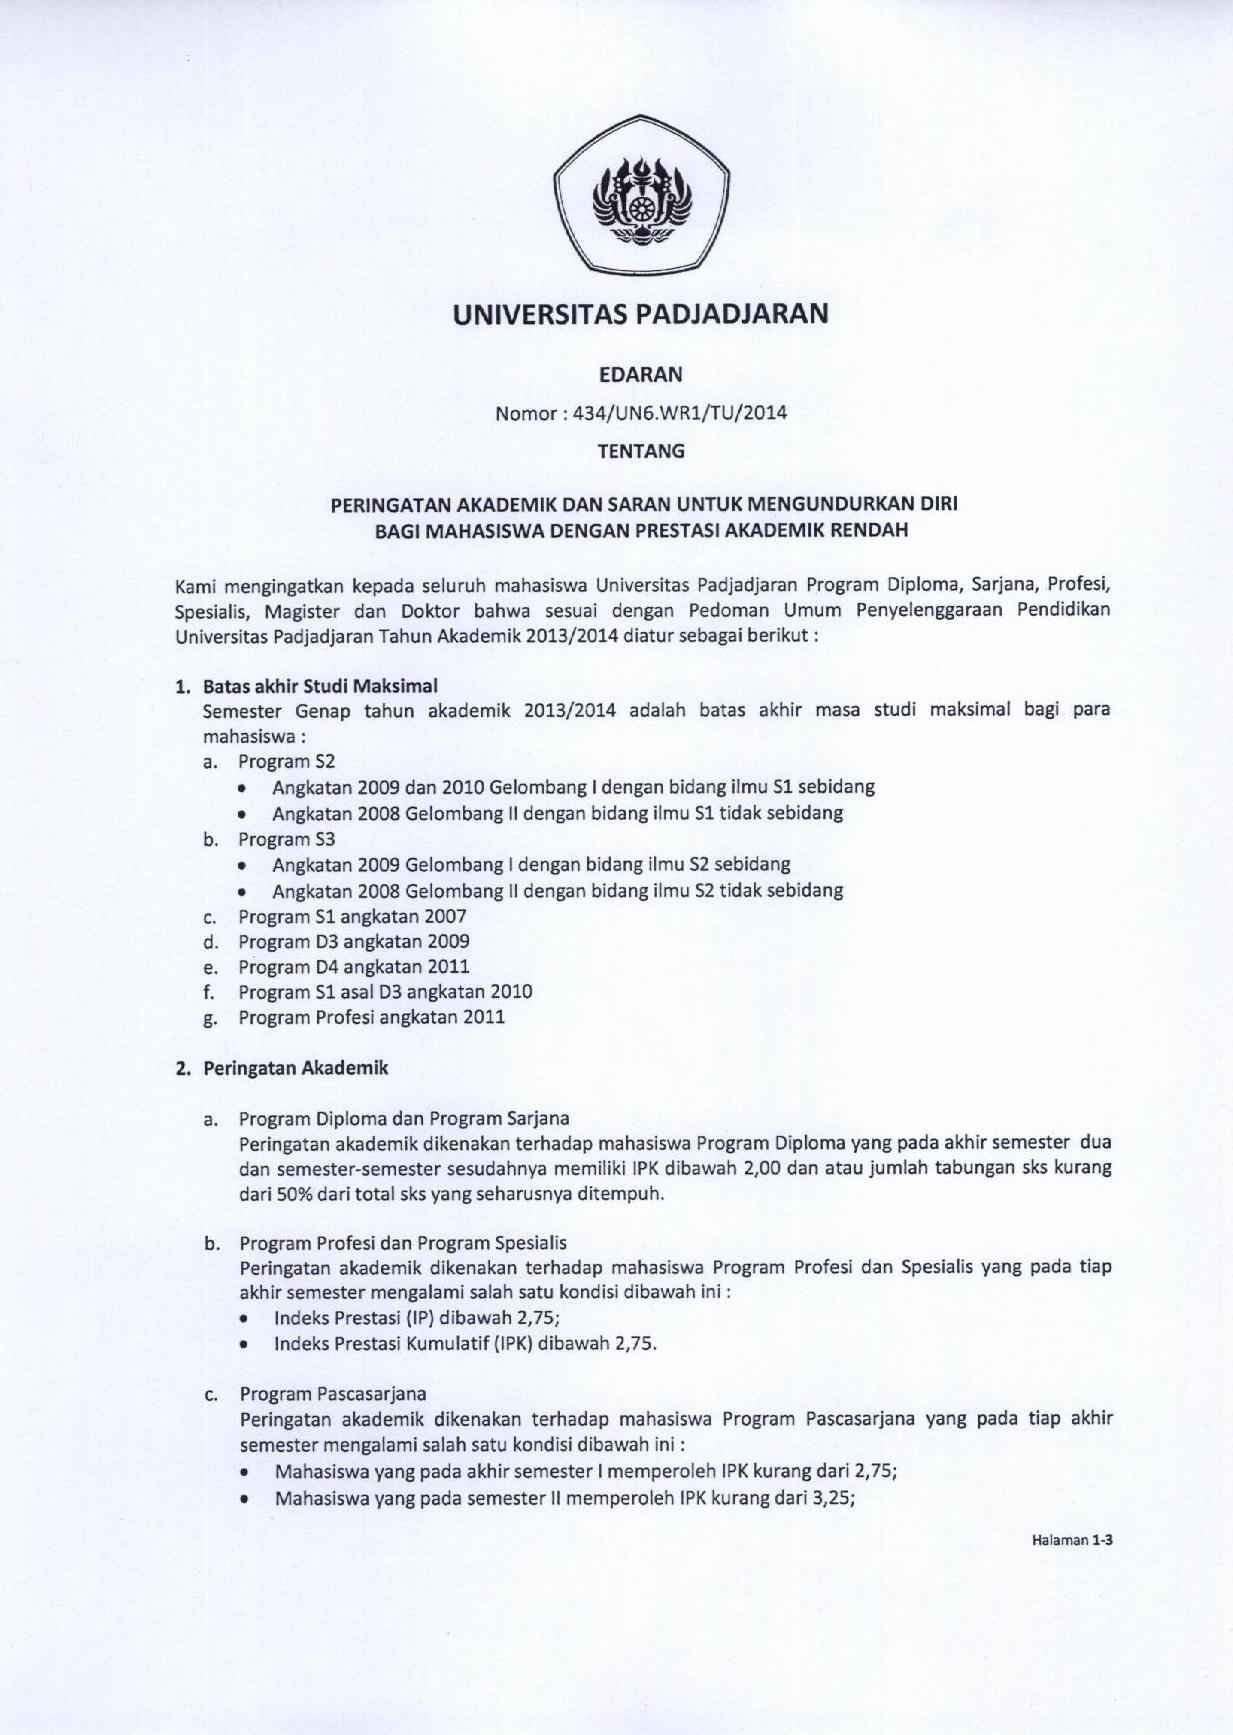 Herregistrasi Universitas Padjadjaran